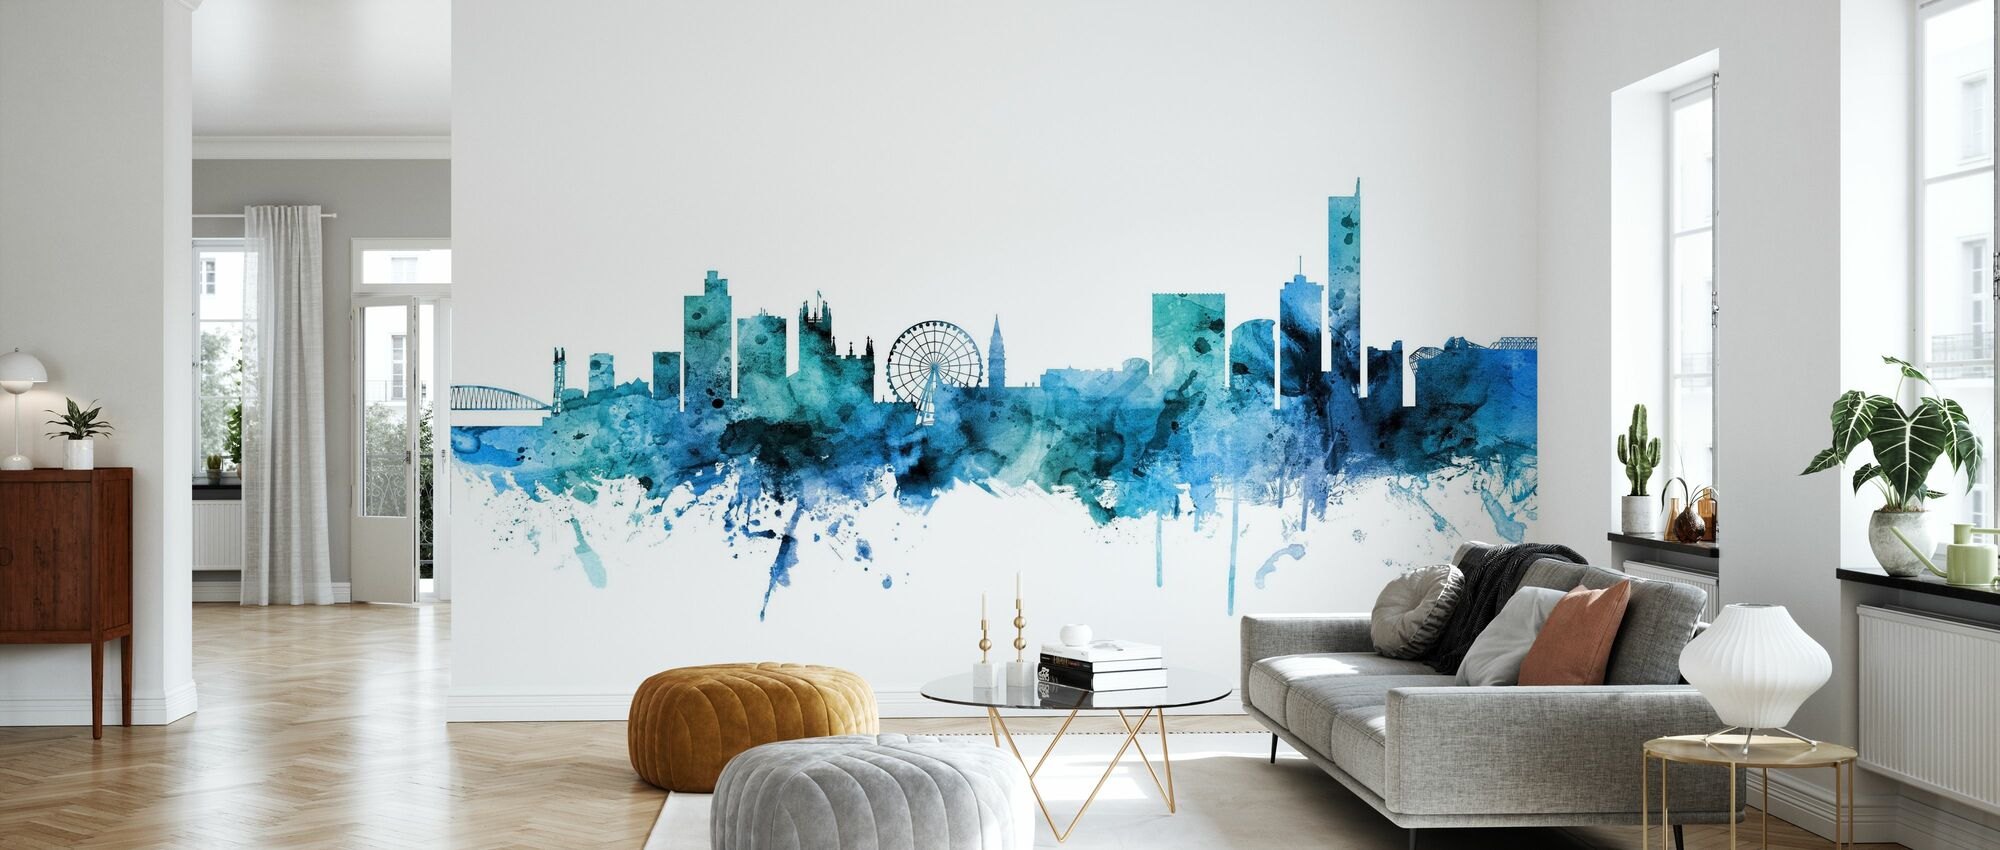 Manchester England Skyline - Wallpaper - Living Room